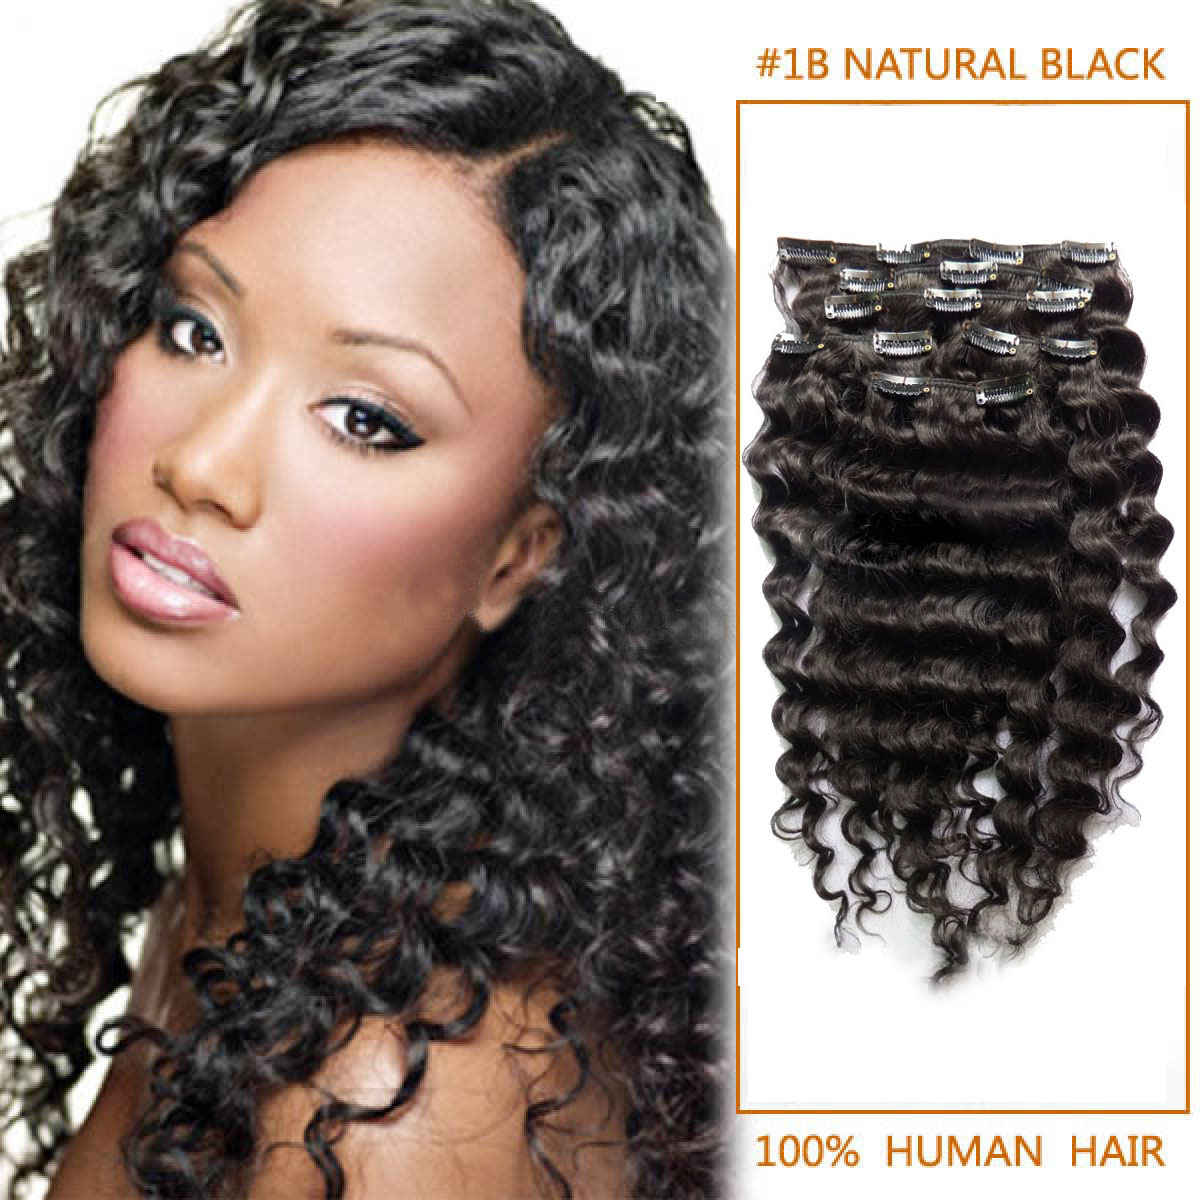 Inch versatile 1b natural black clip in hair extensions curly 7 24 inch versatile 1b natural black clip in hair extensions curly 7 pieces pmusecretfo Choice Image